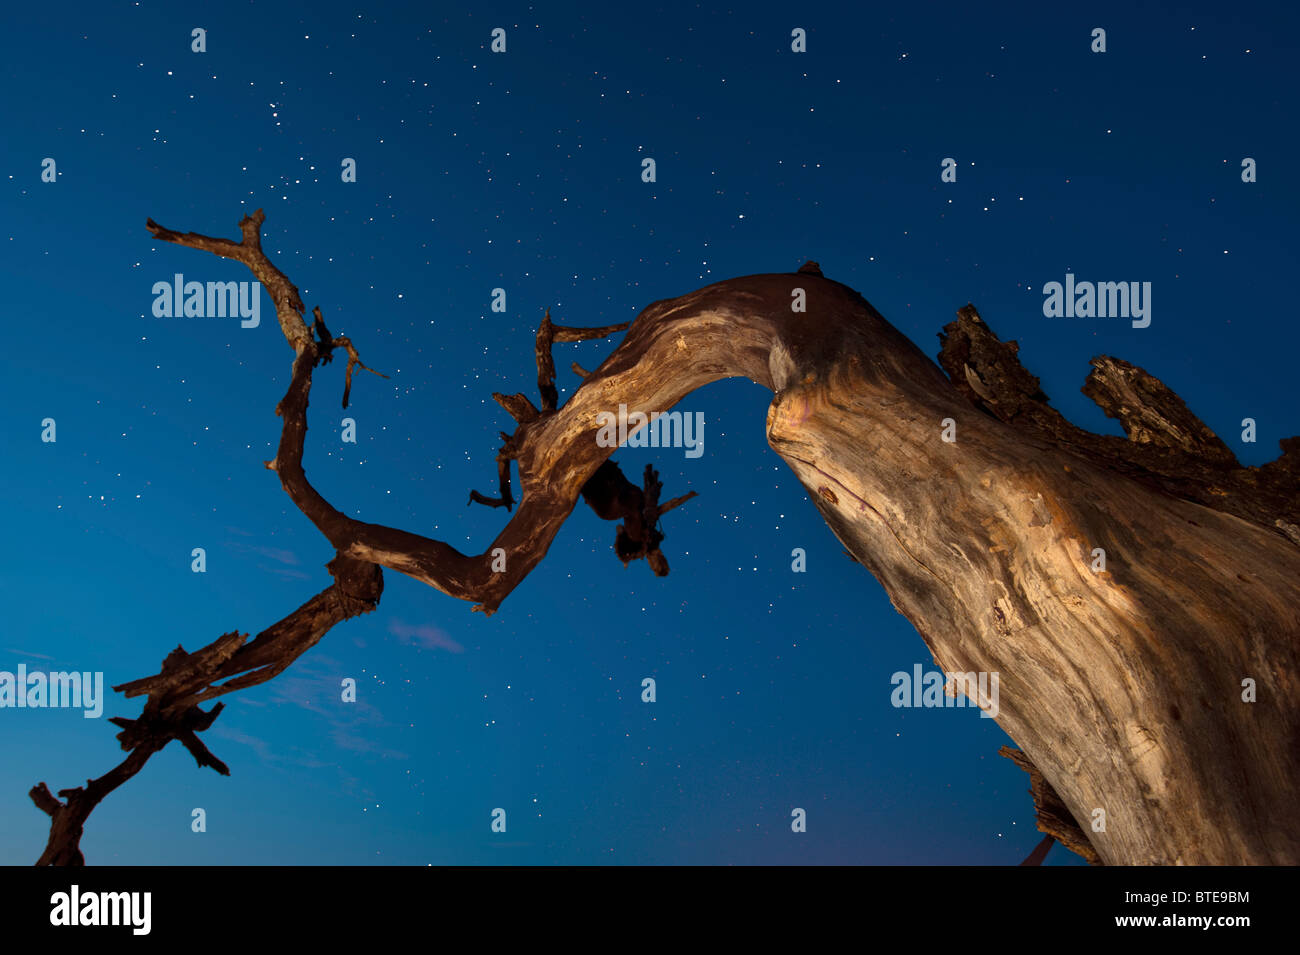 Moody starry sky viewed from below of a dead tree - Stock Image